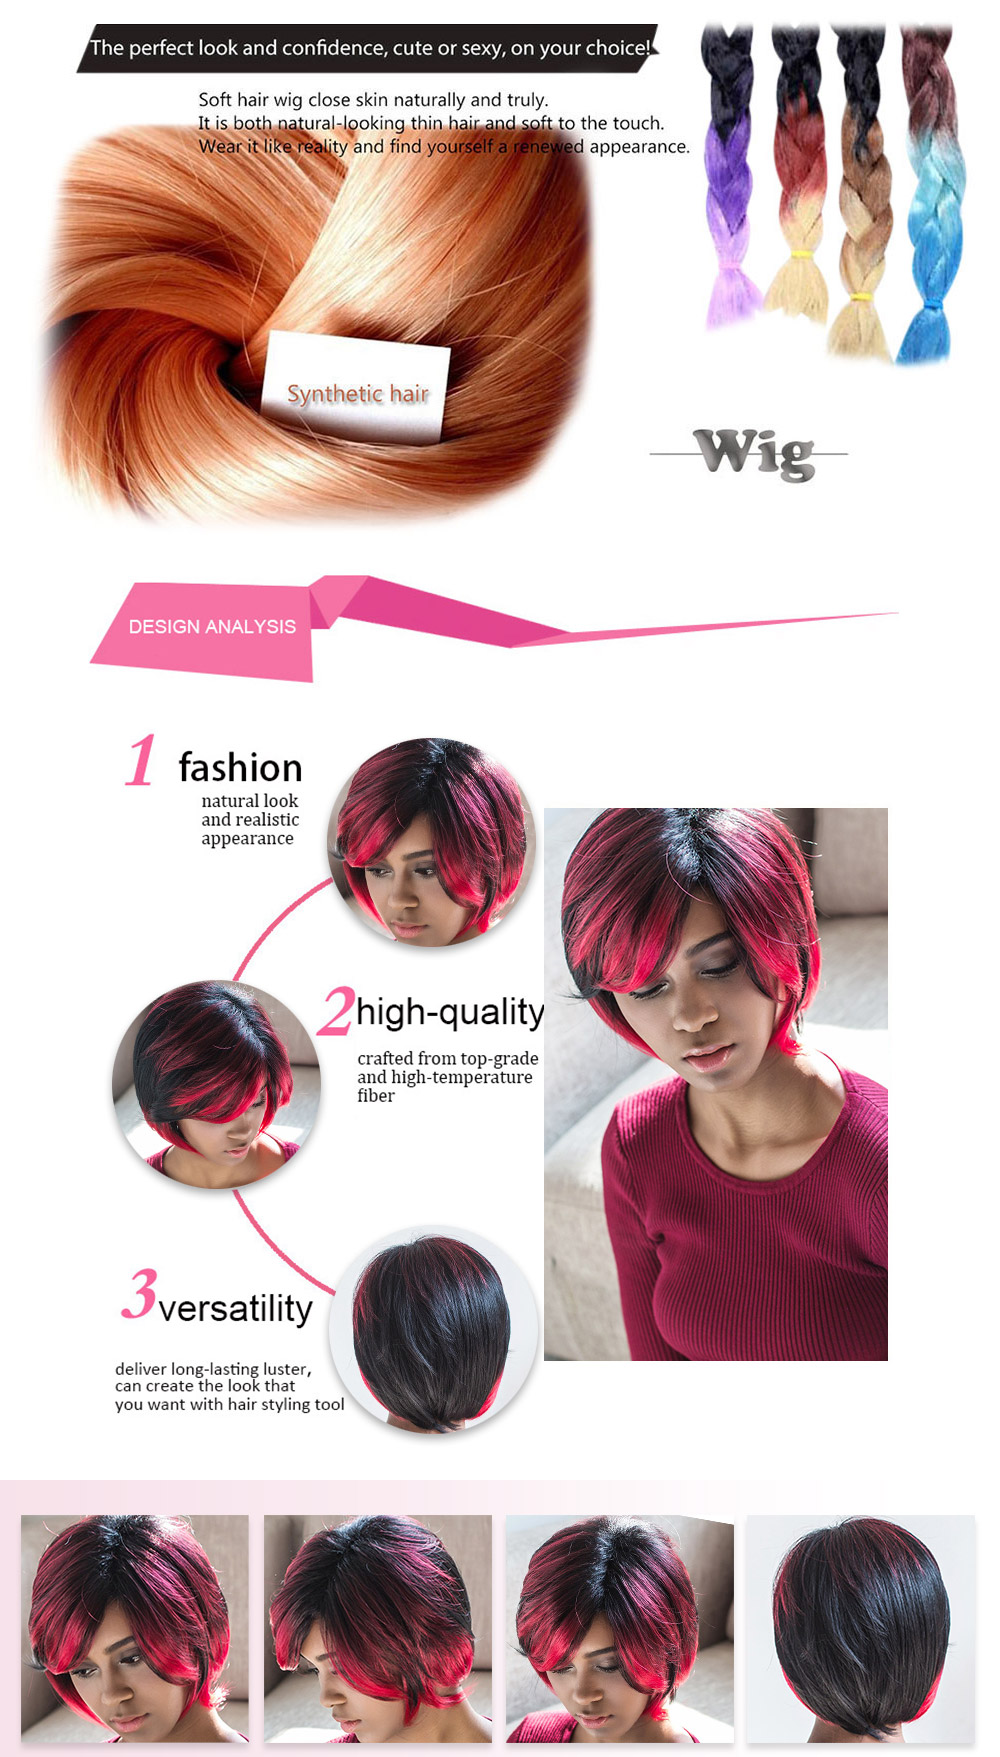 AISIHAIR Short Straight Side Bangs Gradient Black Red Synthetic Wigs for Women